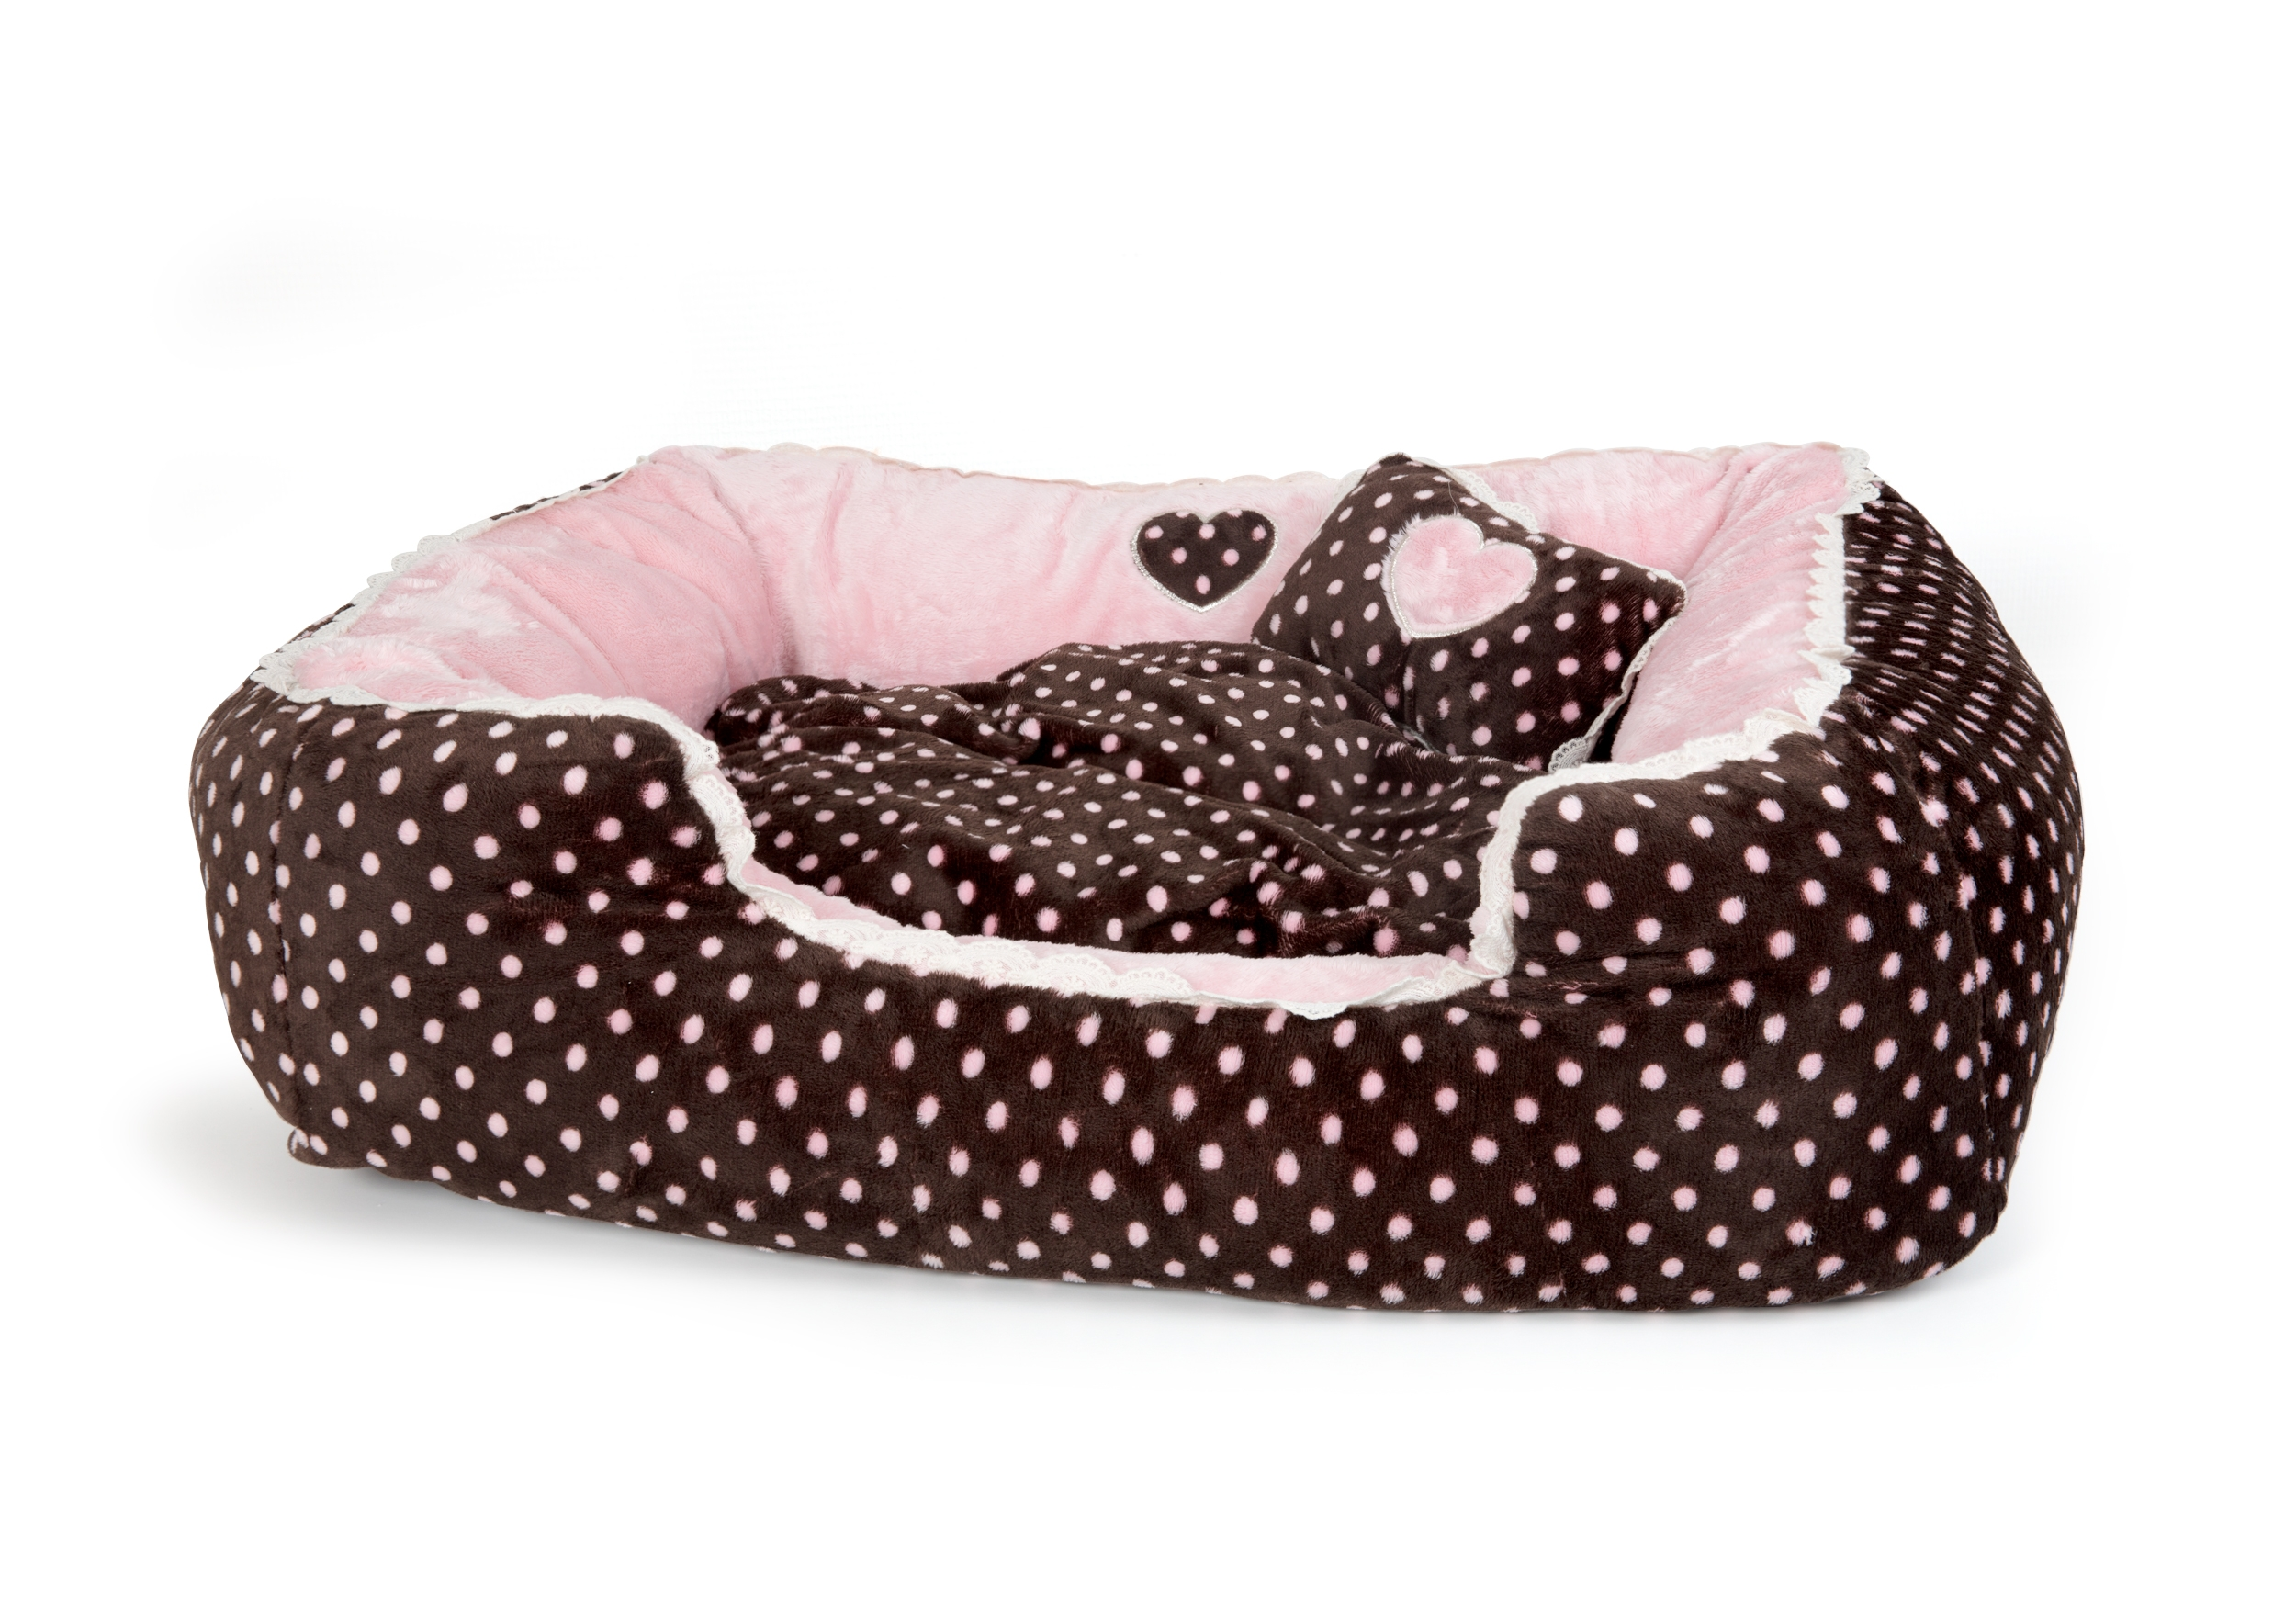 Soft Velour Polka Dimple Bed - Pink